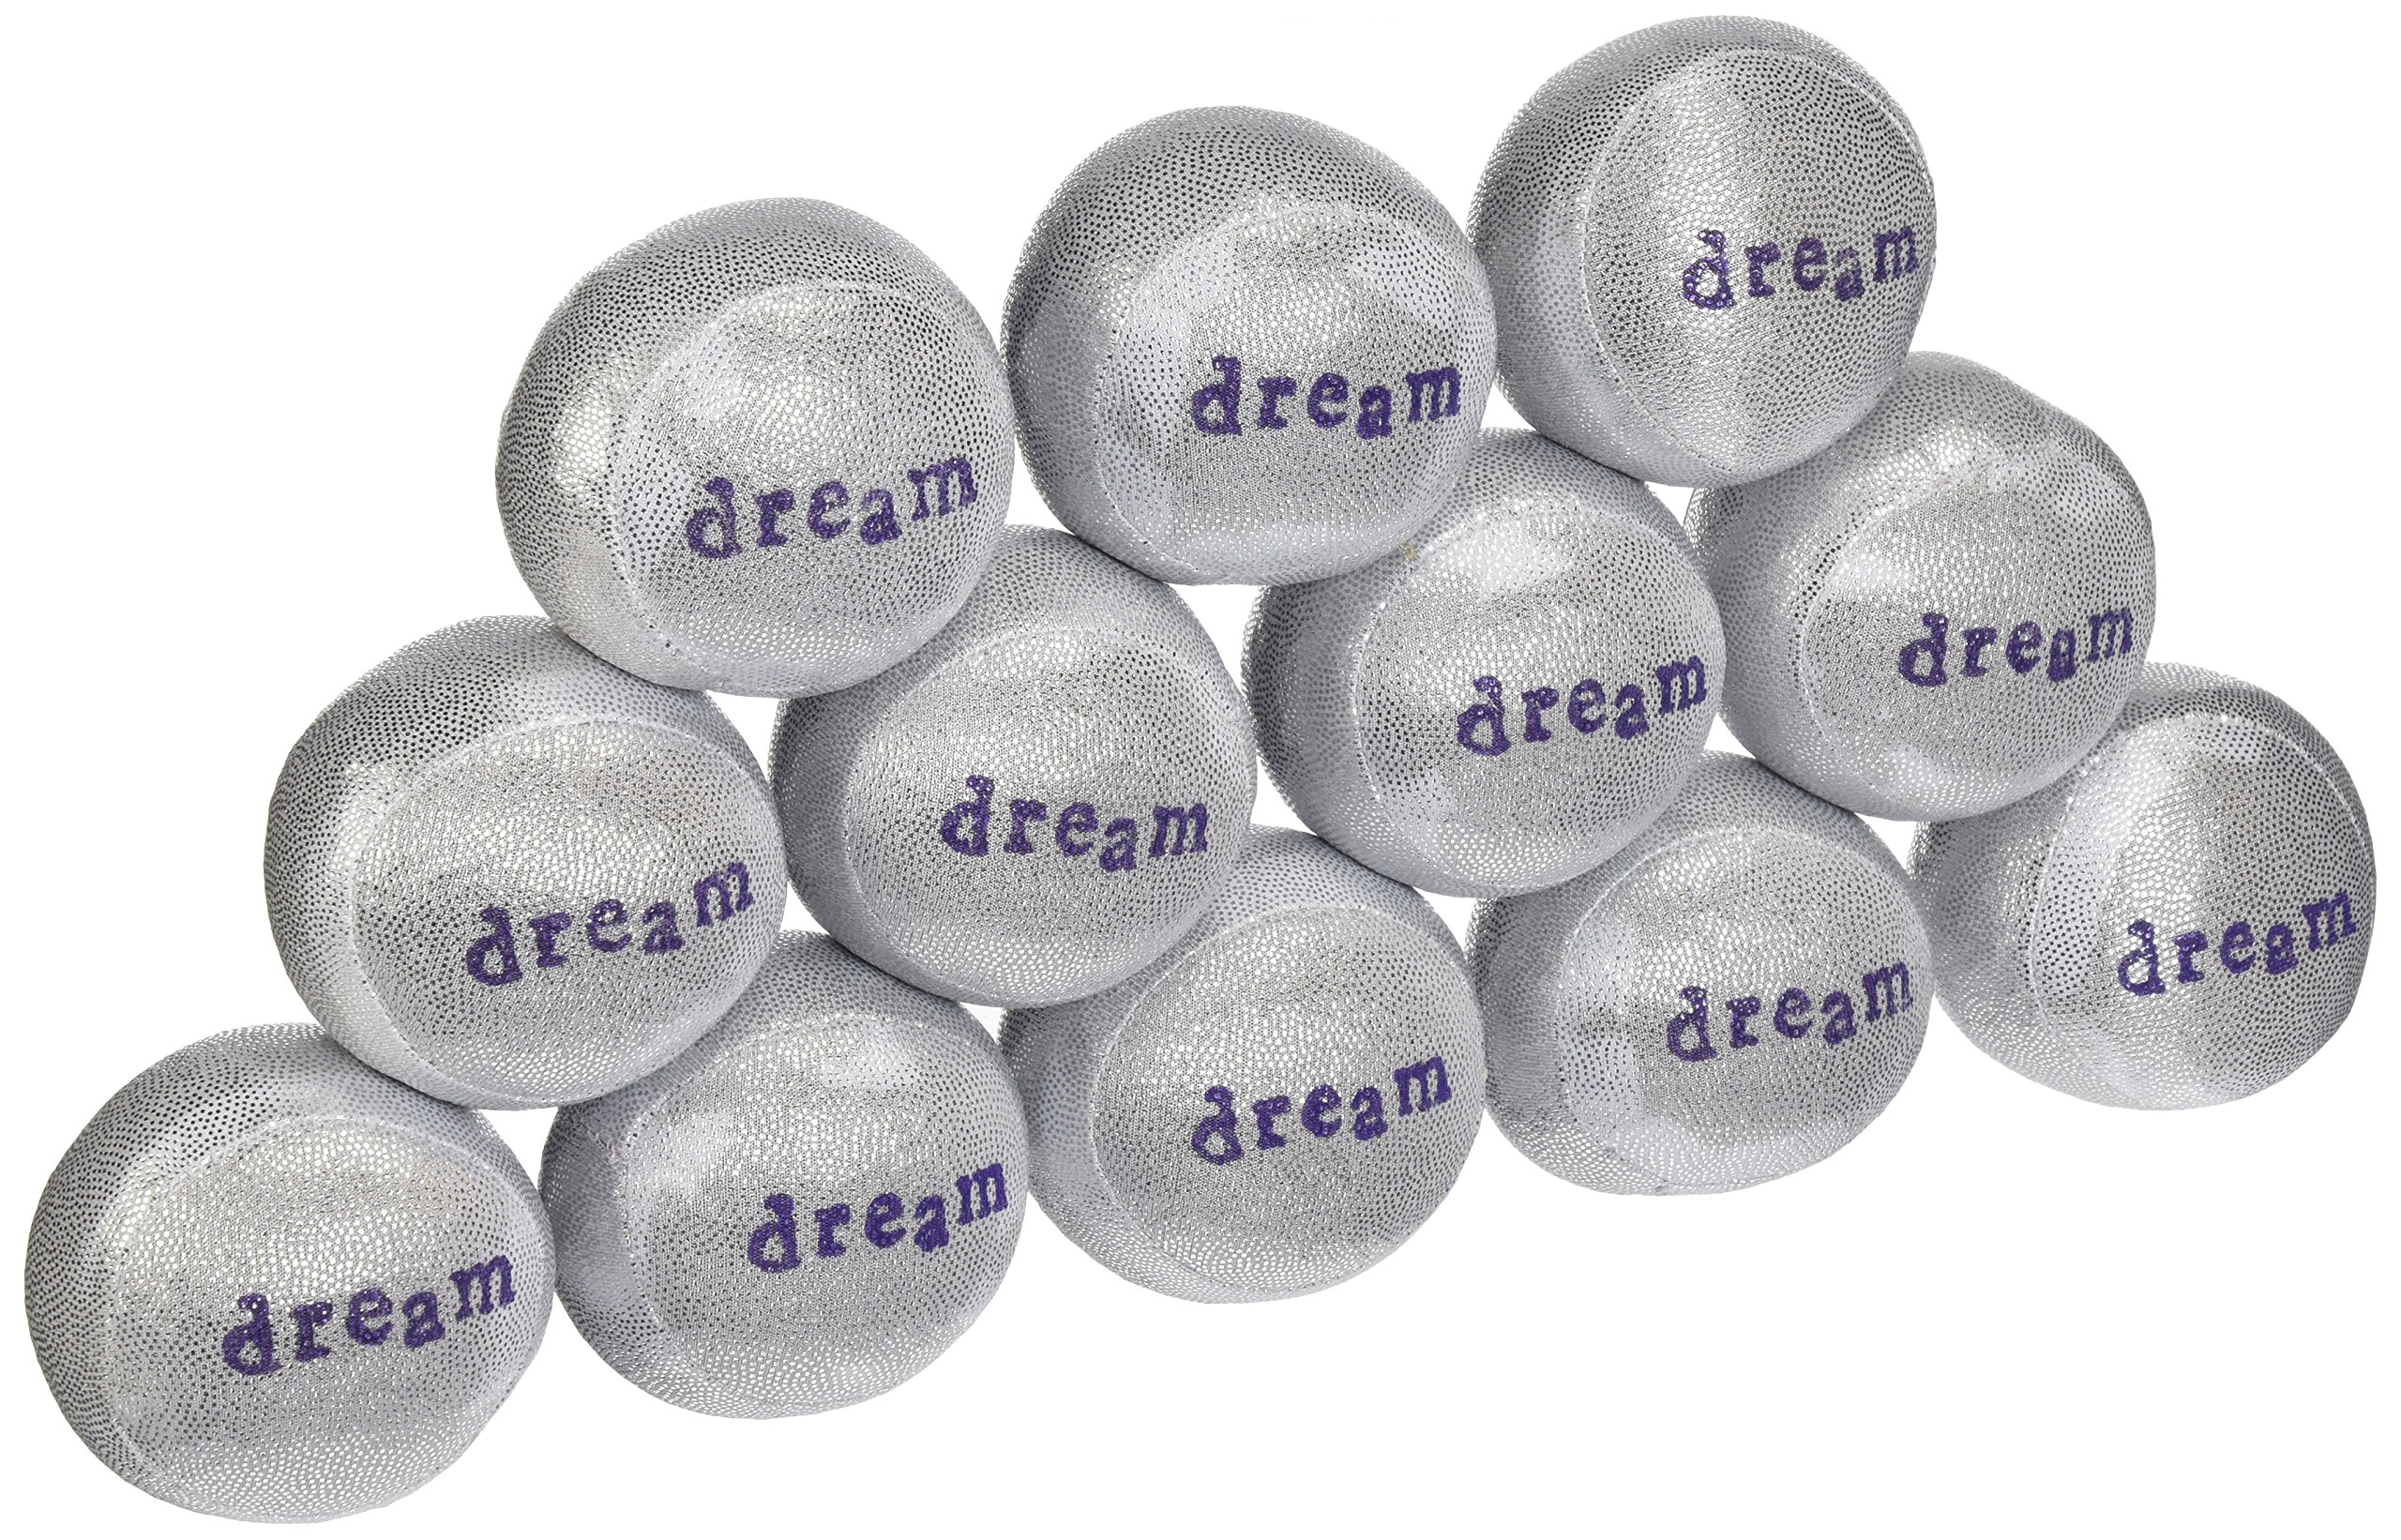 Lavender Luvies Lavender Stress Balls, Silver Dream - 12 Pack by Lavender Luvies (Image #1)